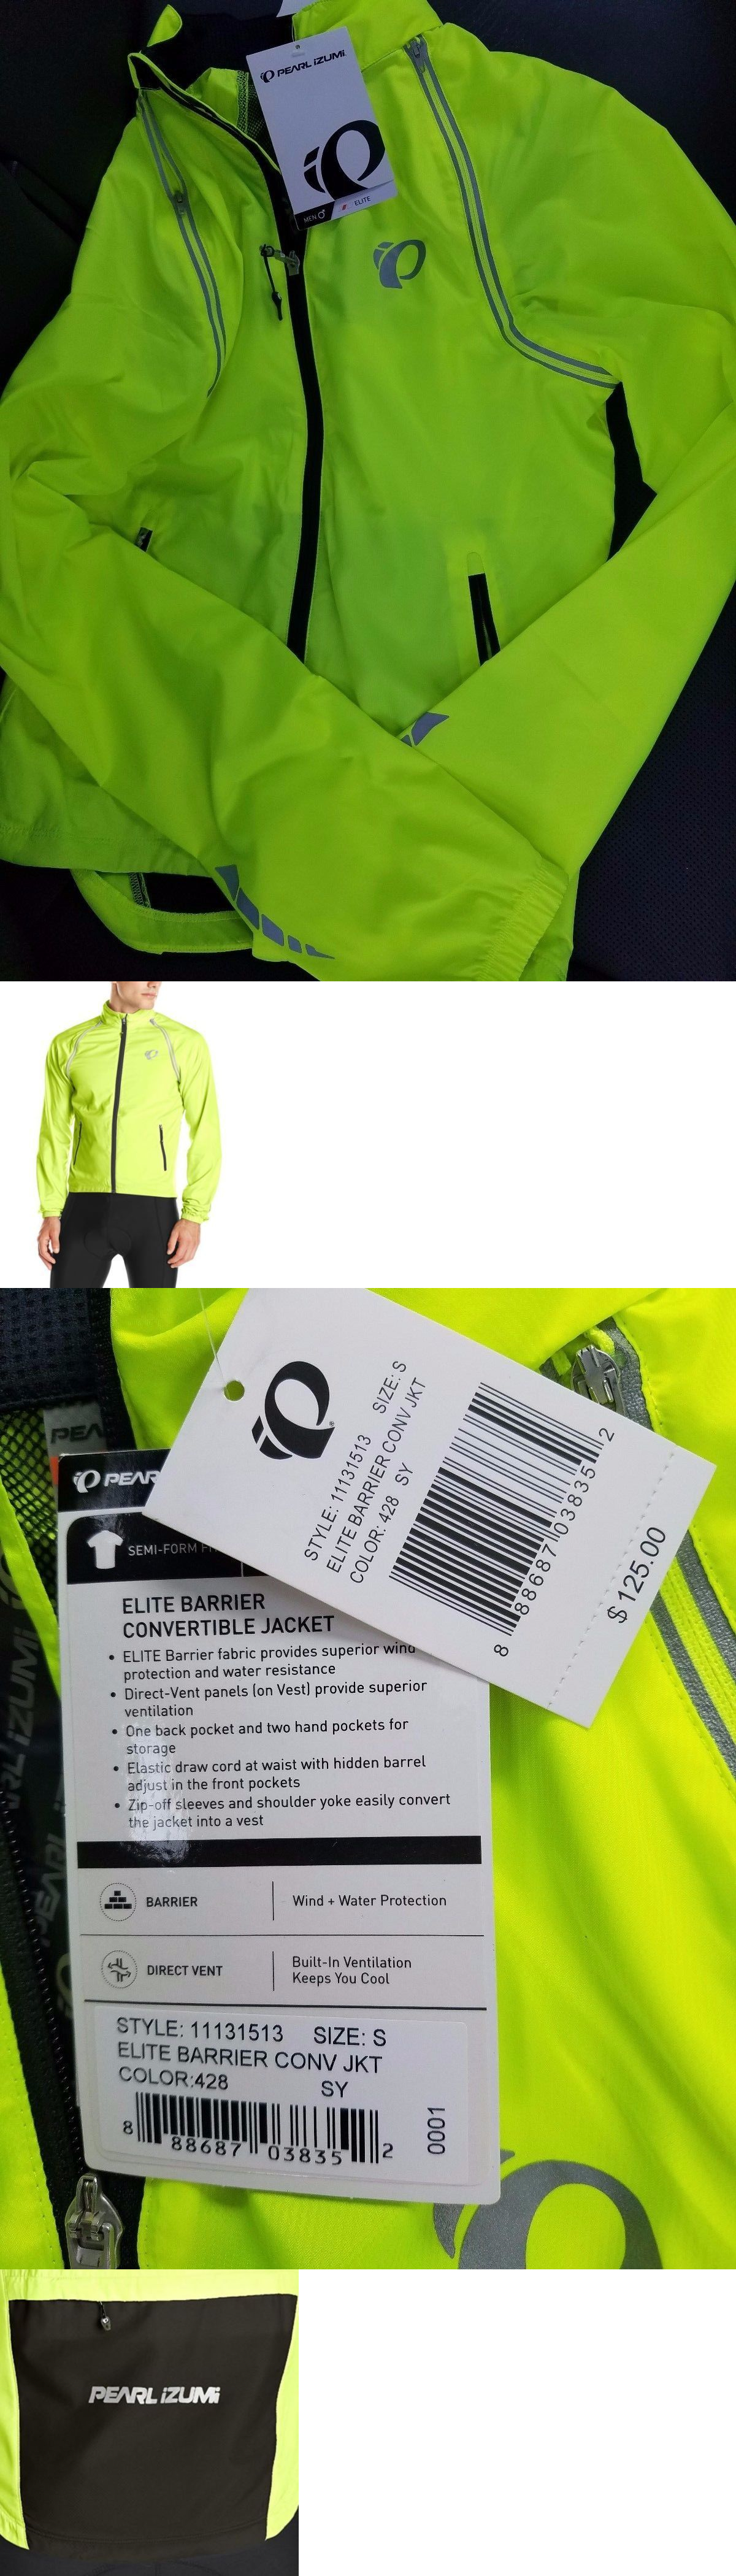 Jackets 36124: New Pearl Izumi Elite Barrier Convertible Men S Cycling Jacket 11131513 Small -> BUY IT NOW ONLY: $78.88 on eBay!